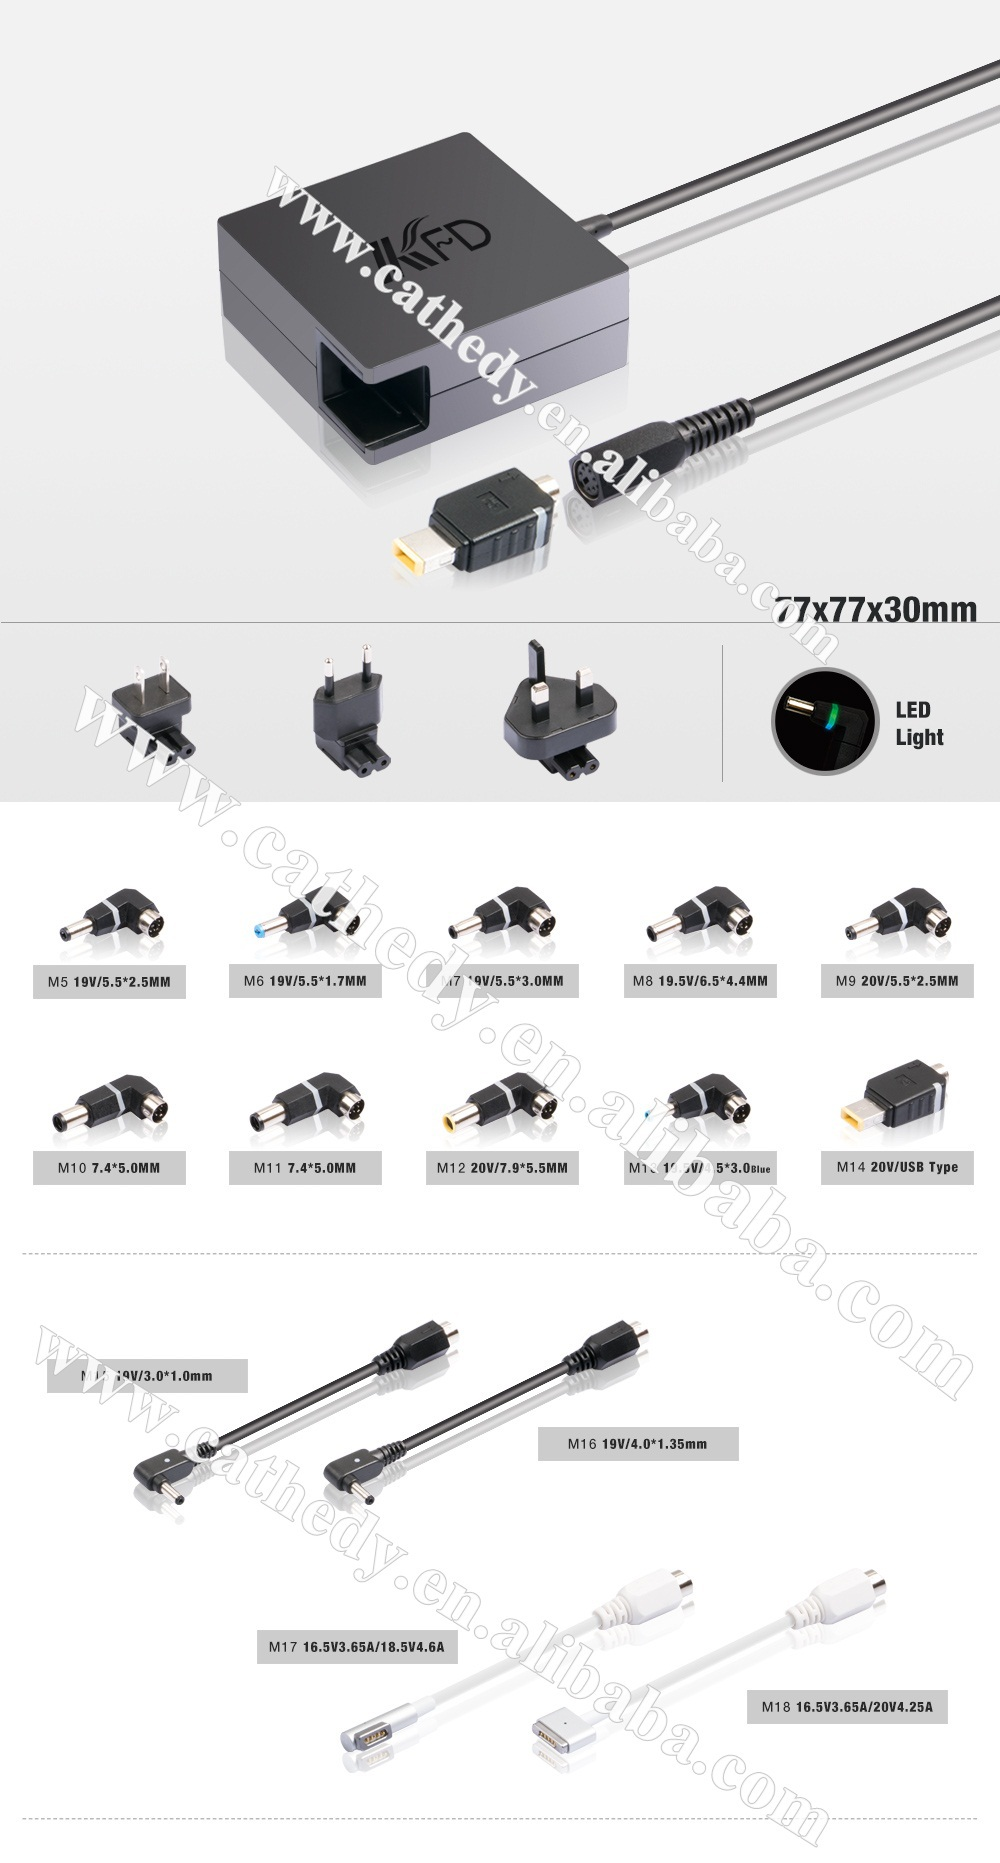 Automatic 90W Universal Laptop Adapter with 10 connectors LED light